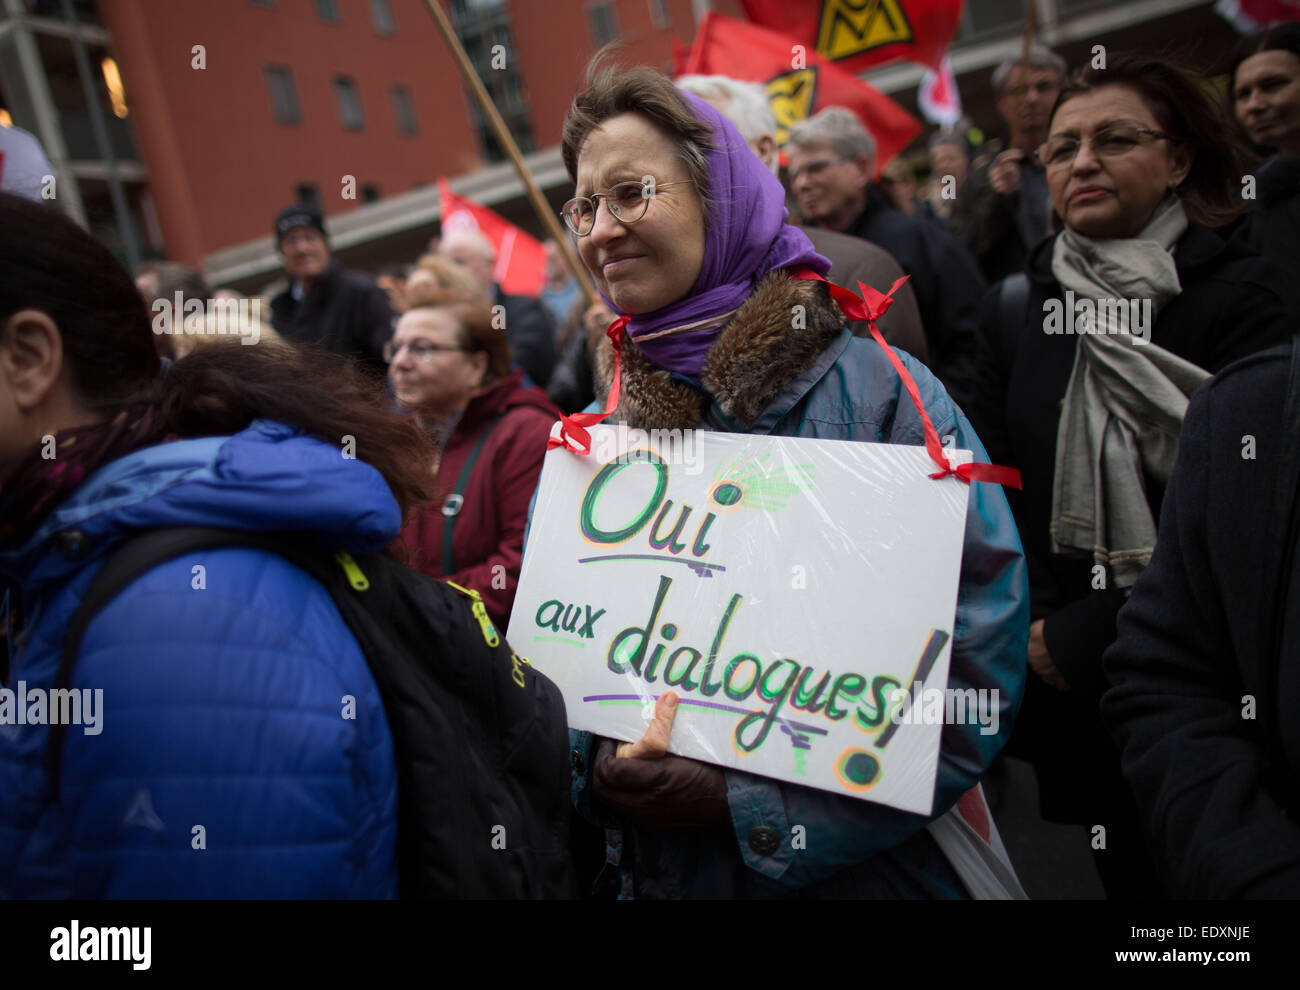 A woman carries a sign which reads 'Oui aux dialogues' (Yes to Dialogue) during a rally to commemorate the - Stock Image